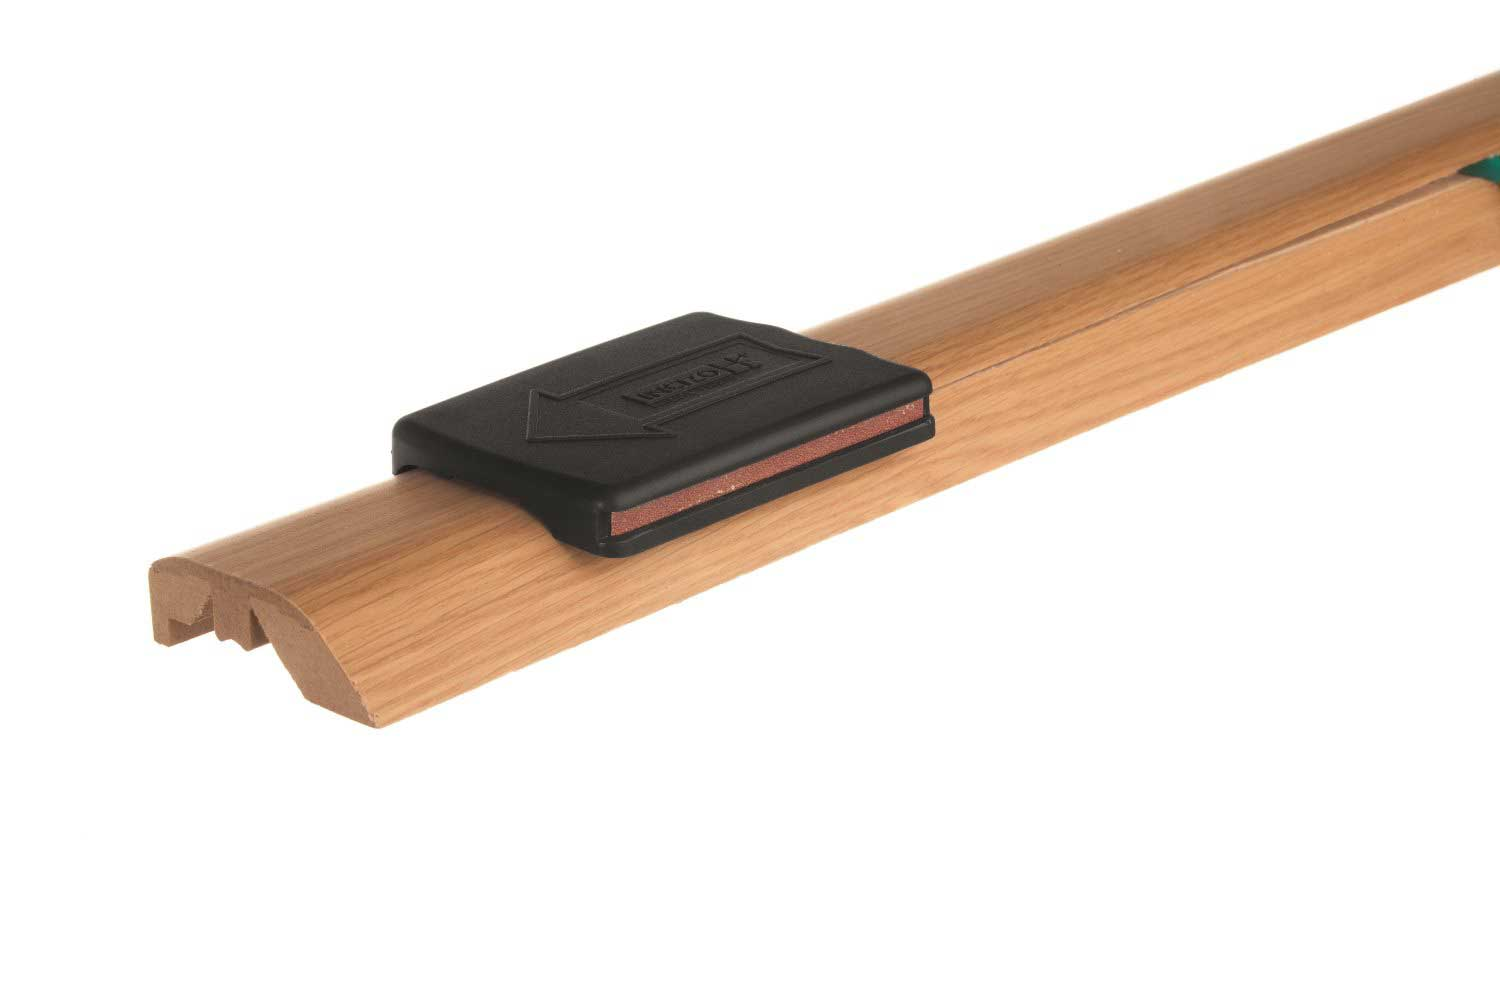 The Pergo 5 In 1 From Van Dyck For Floor Moulding Solutions